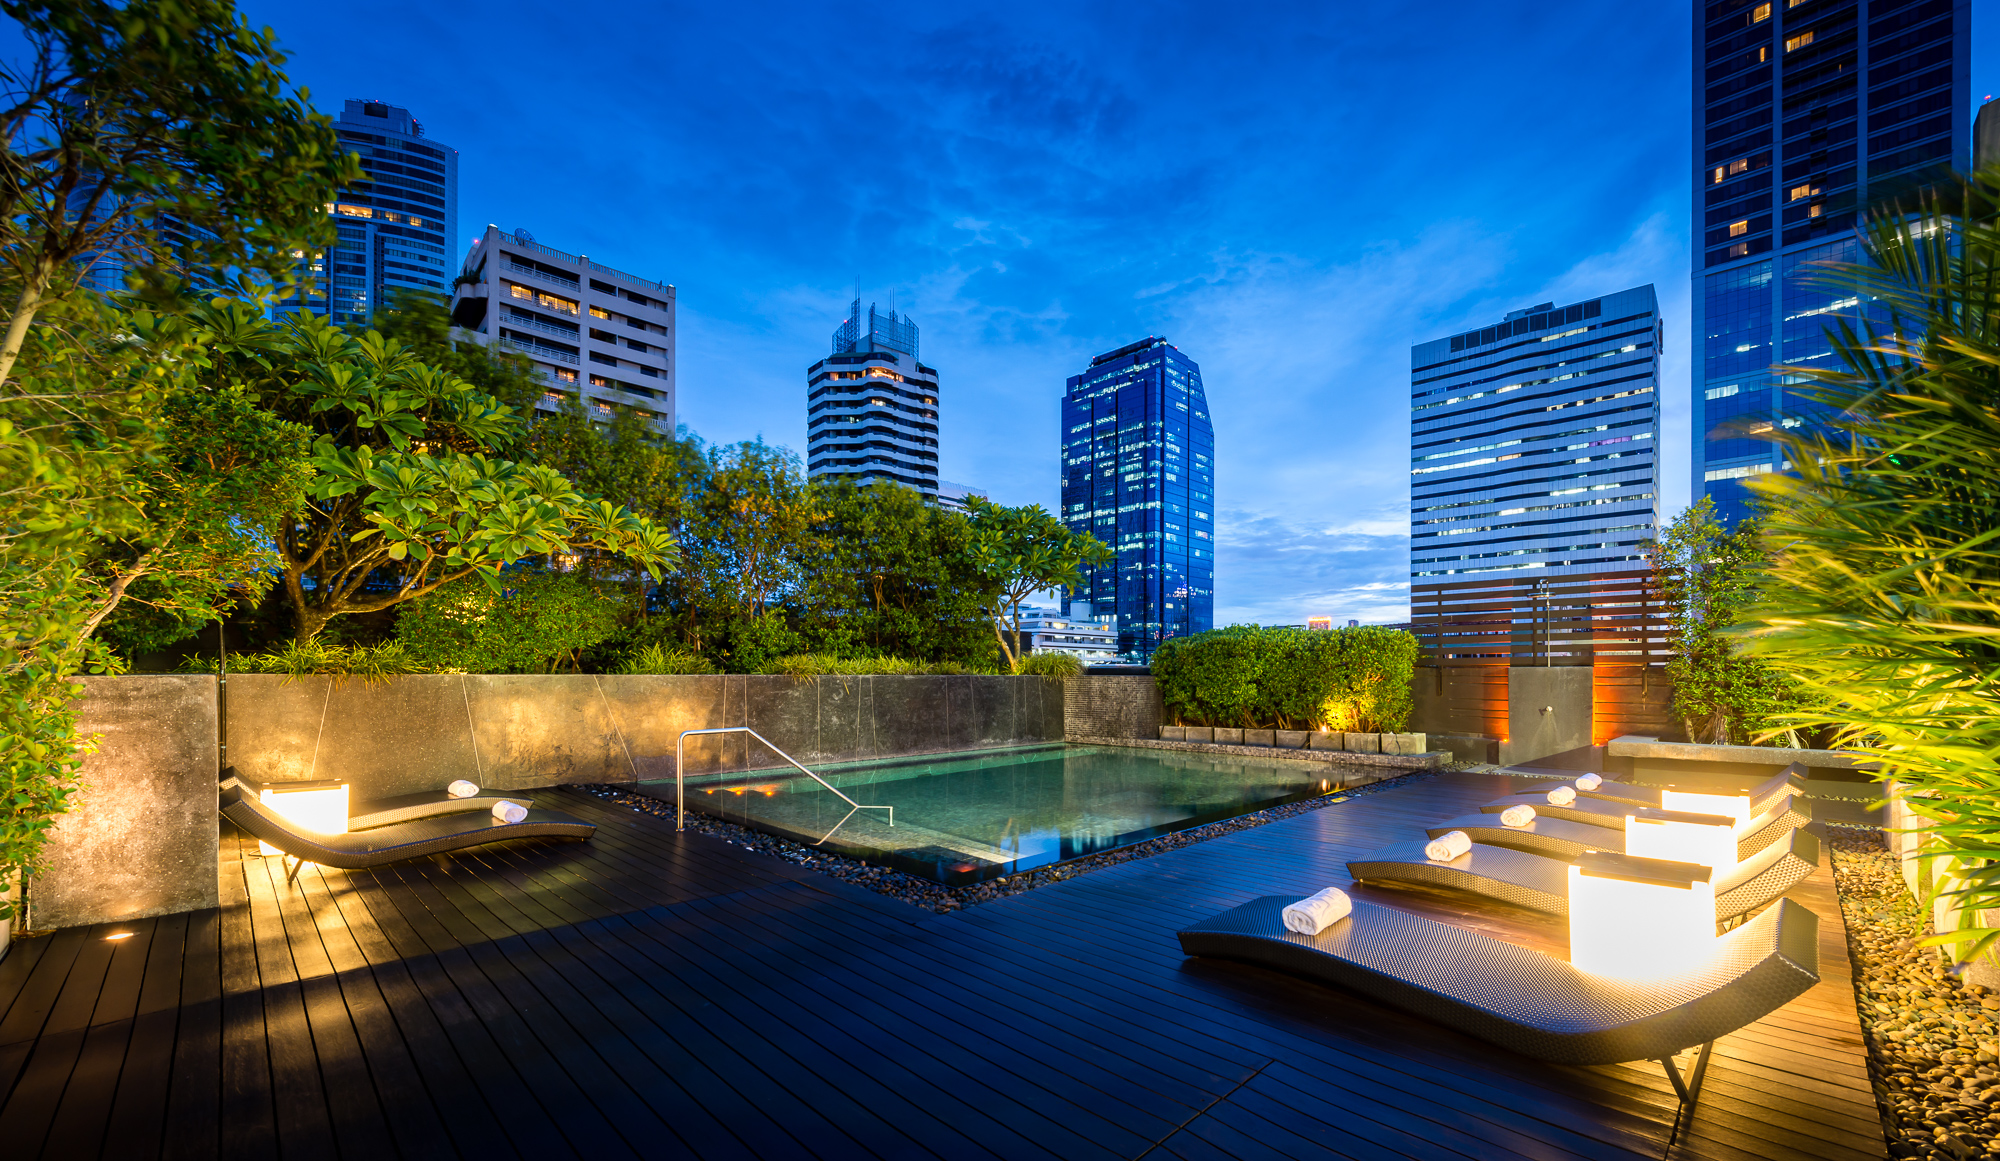 The most romantic hotels in bangkok for couples for Hotel bangkok